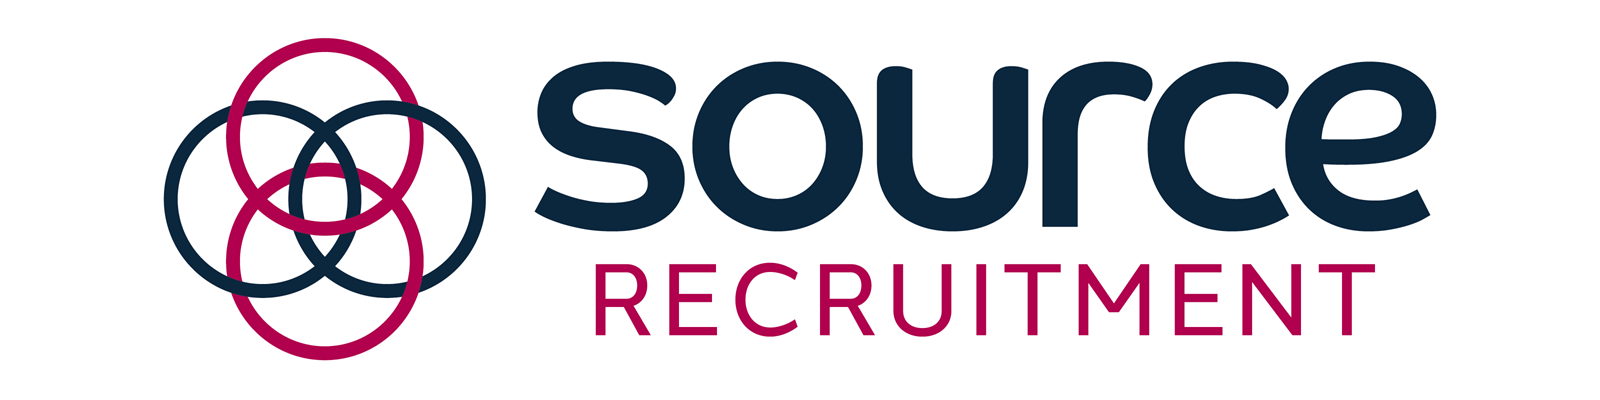 Source Recruitment Specialists Logo